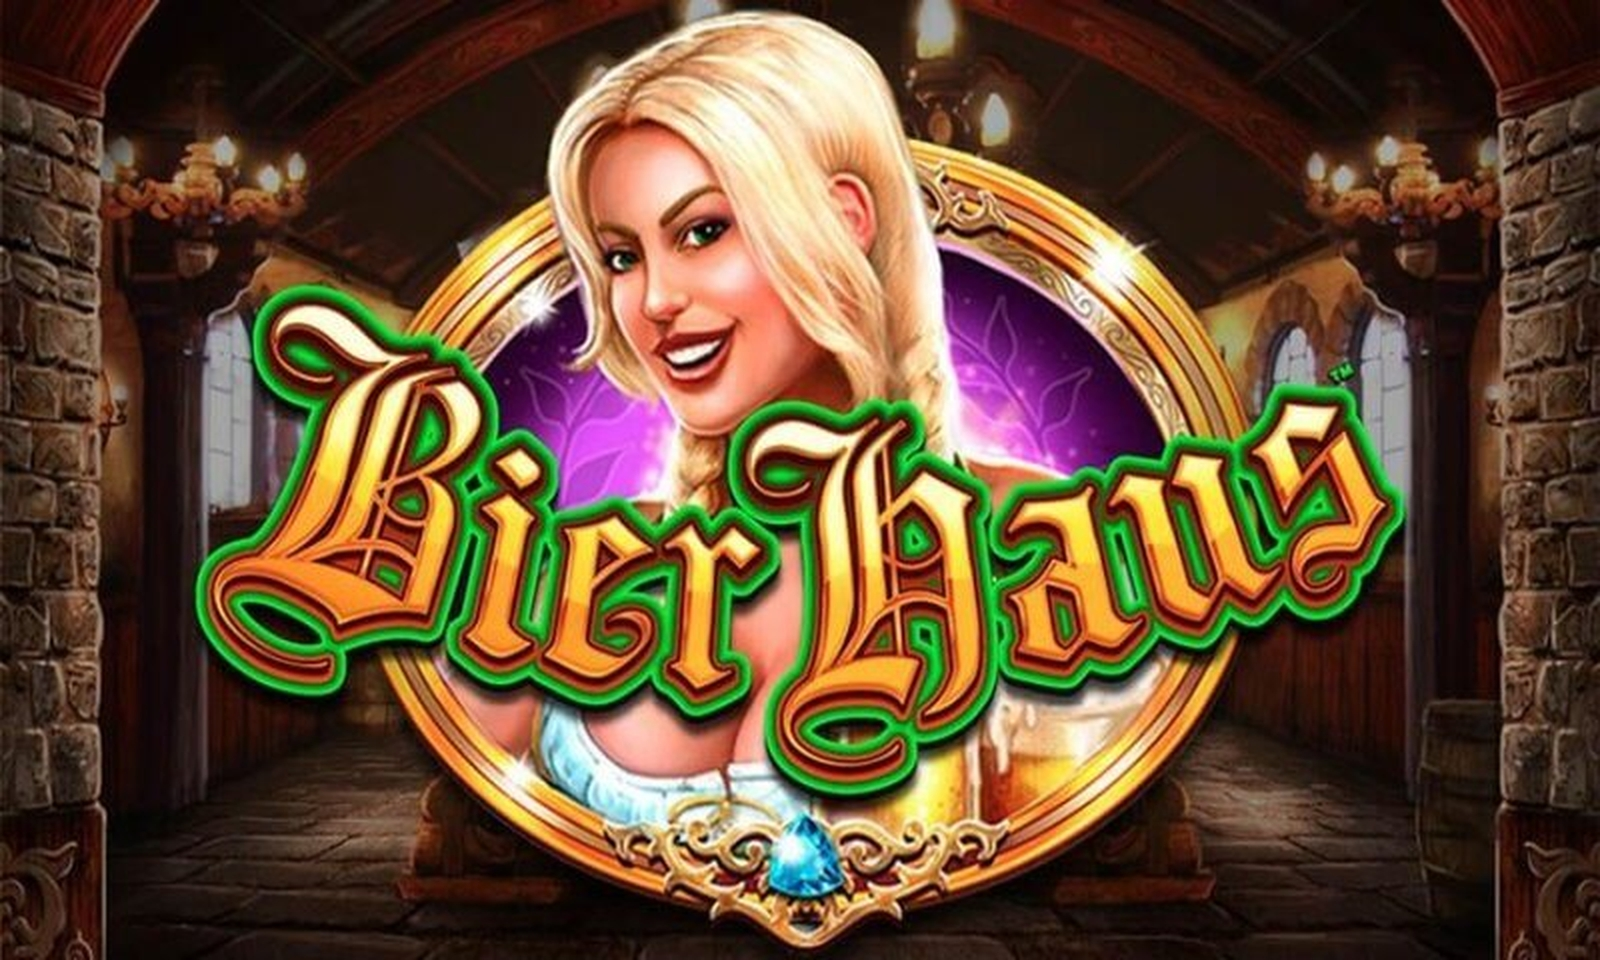 The Bier Haus Online Slot Demo Game by WMS